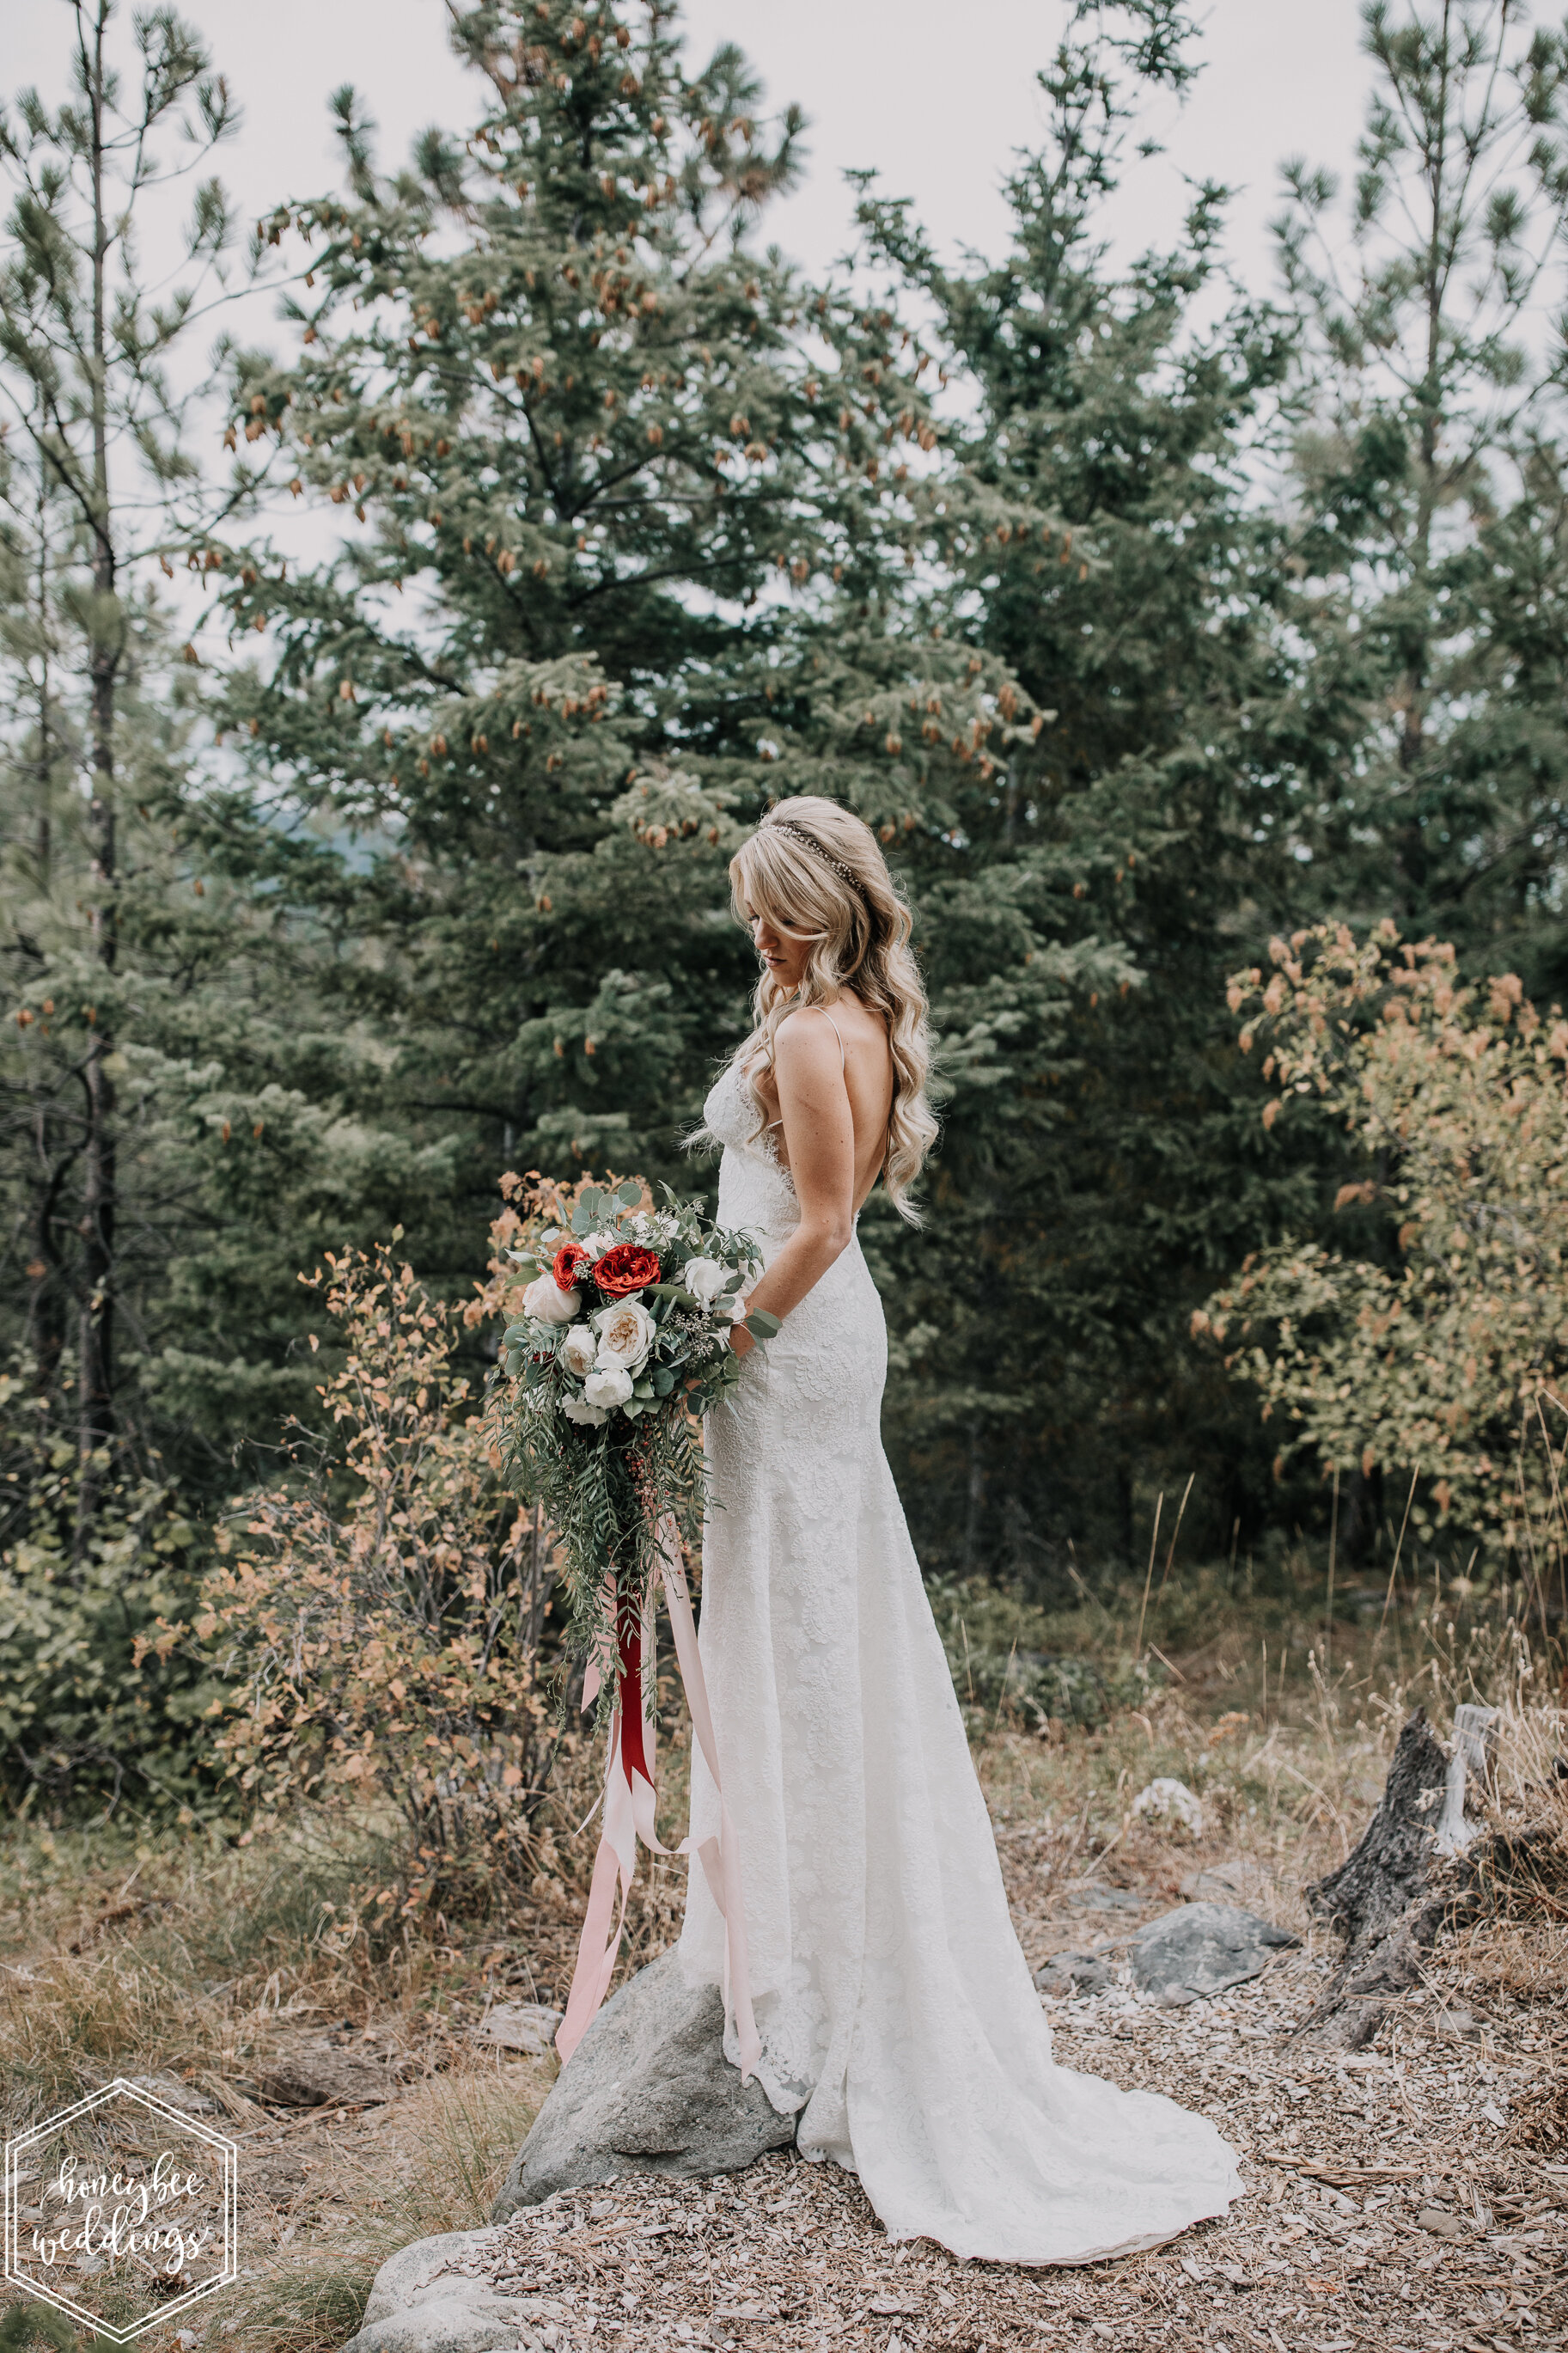 0051Swiftwater Cellars Wedding_Cle Elum Wedding_Montana Wedding Photographer_Kat & Kyle_September 15, 2018-905.jpg